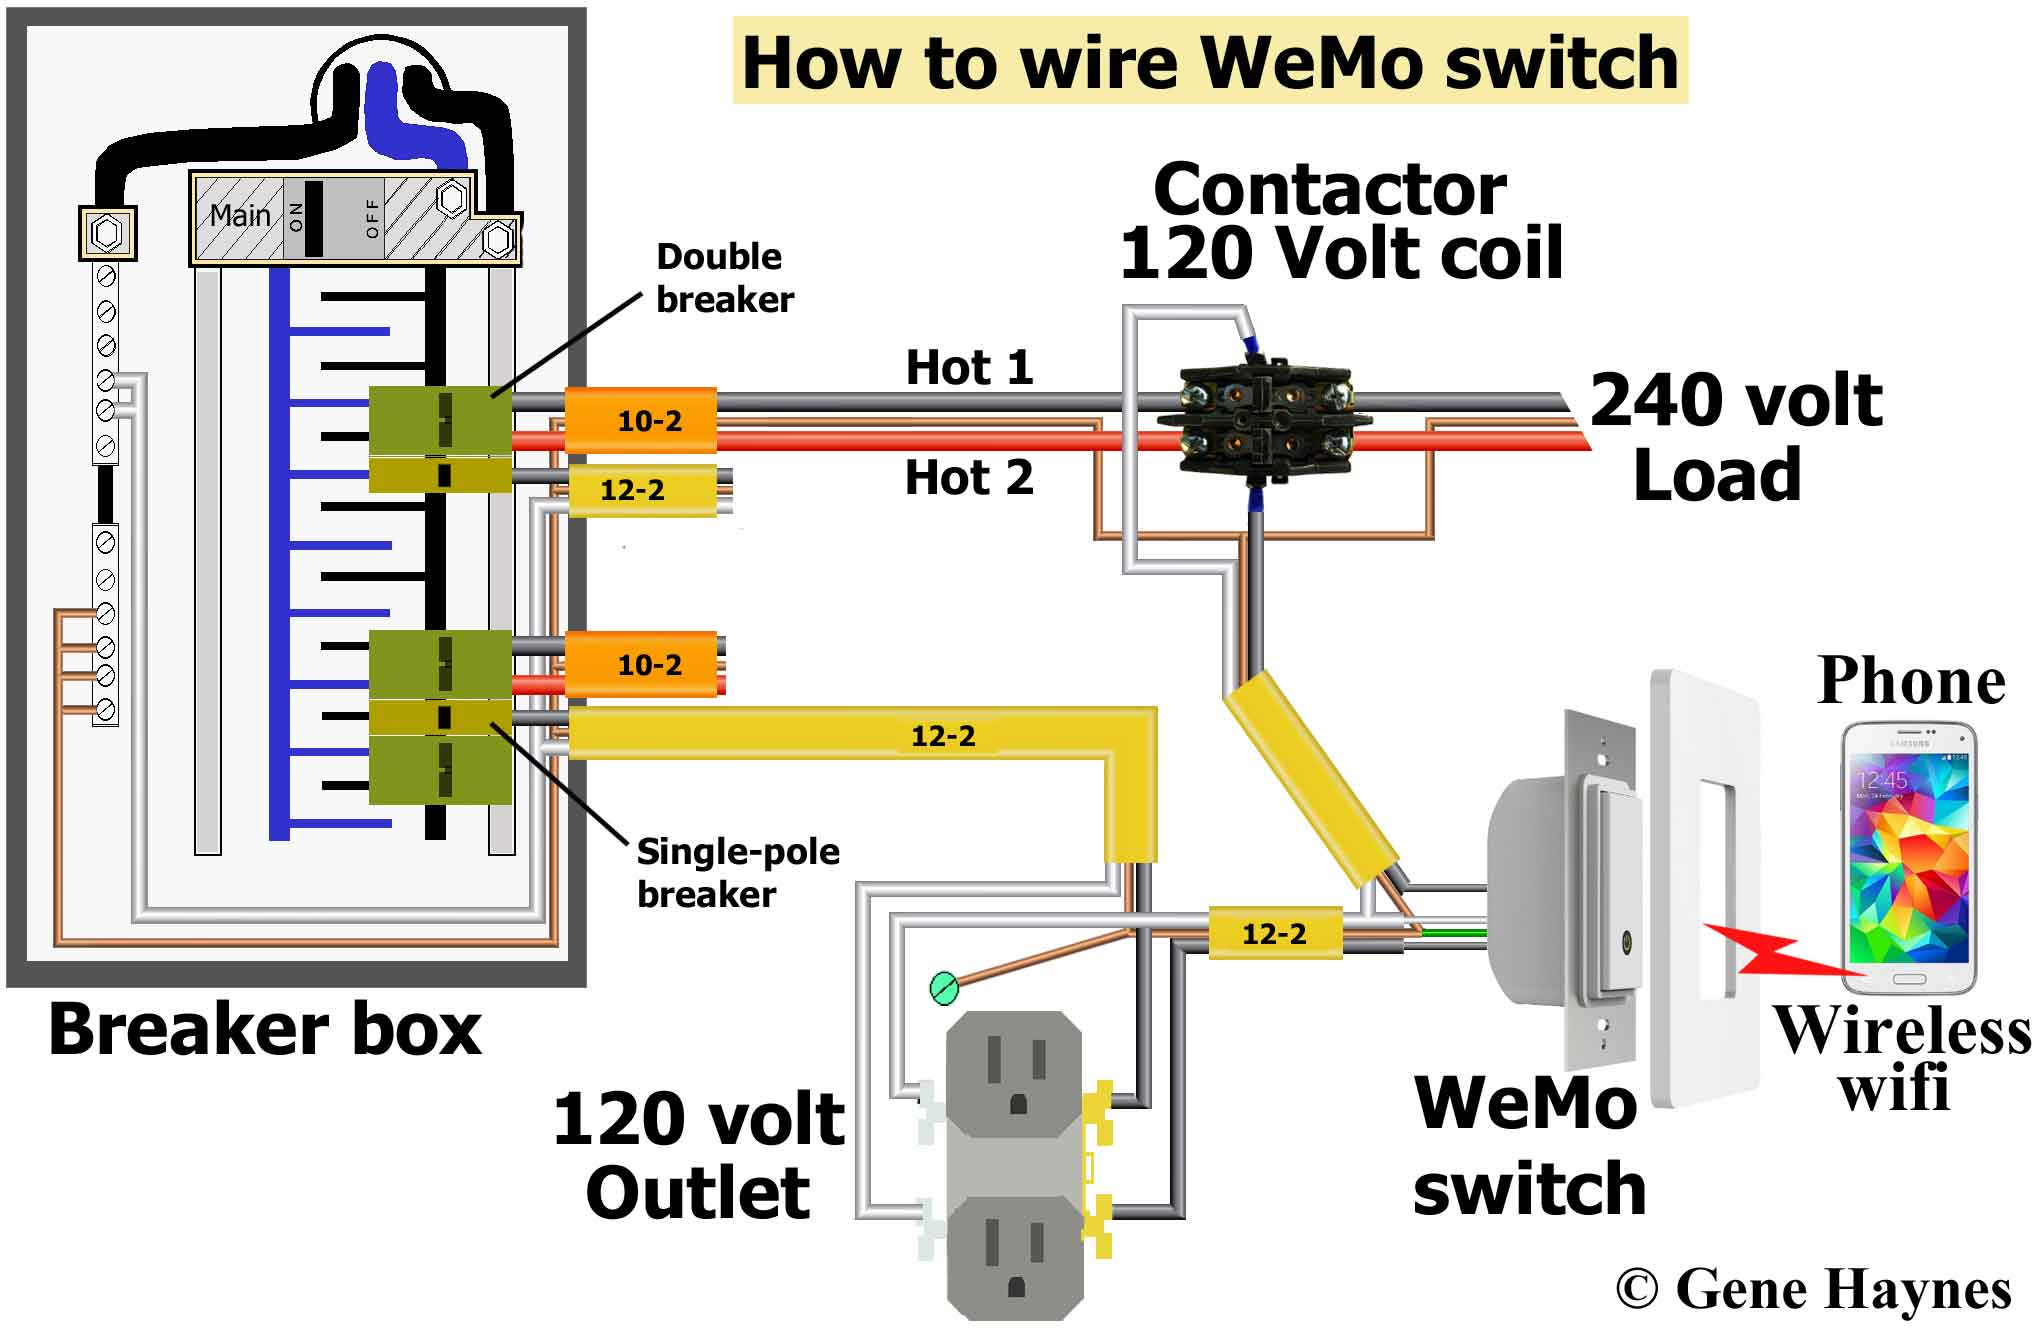 WeMo switch wiring illustration 3 control 240 volt with wemo volt free contact wiring diagram at readyjetset.co